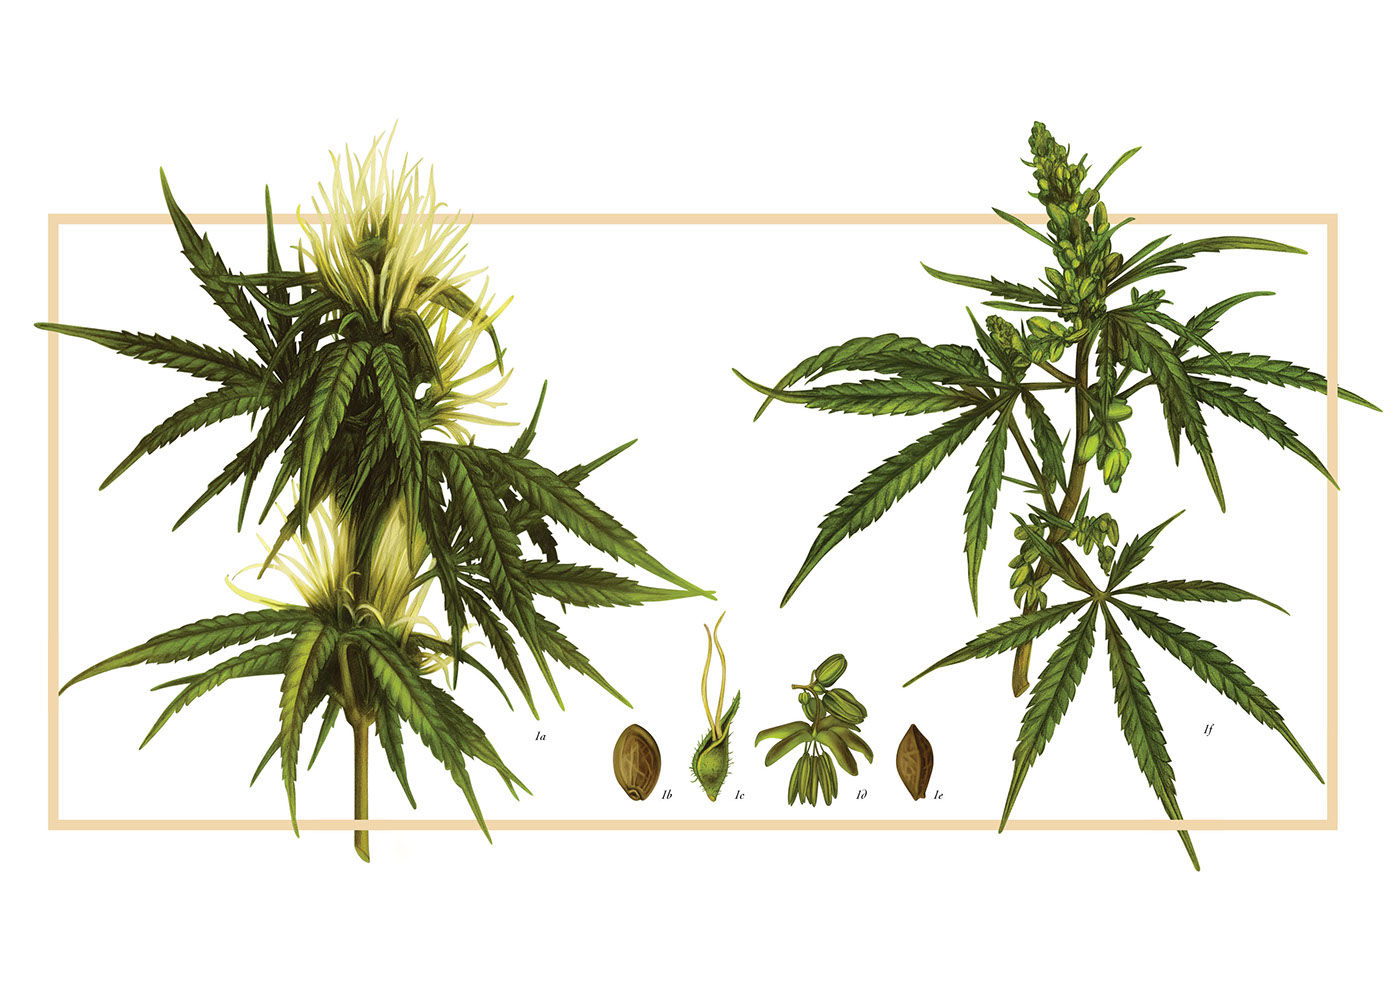 Drawn weed real Is known on its botanical